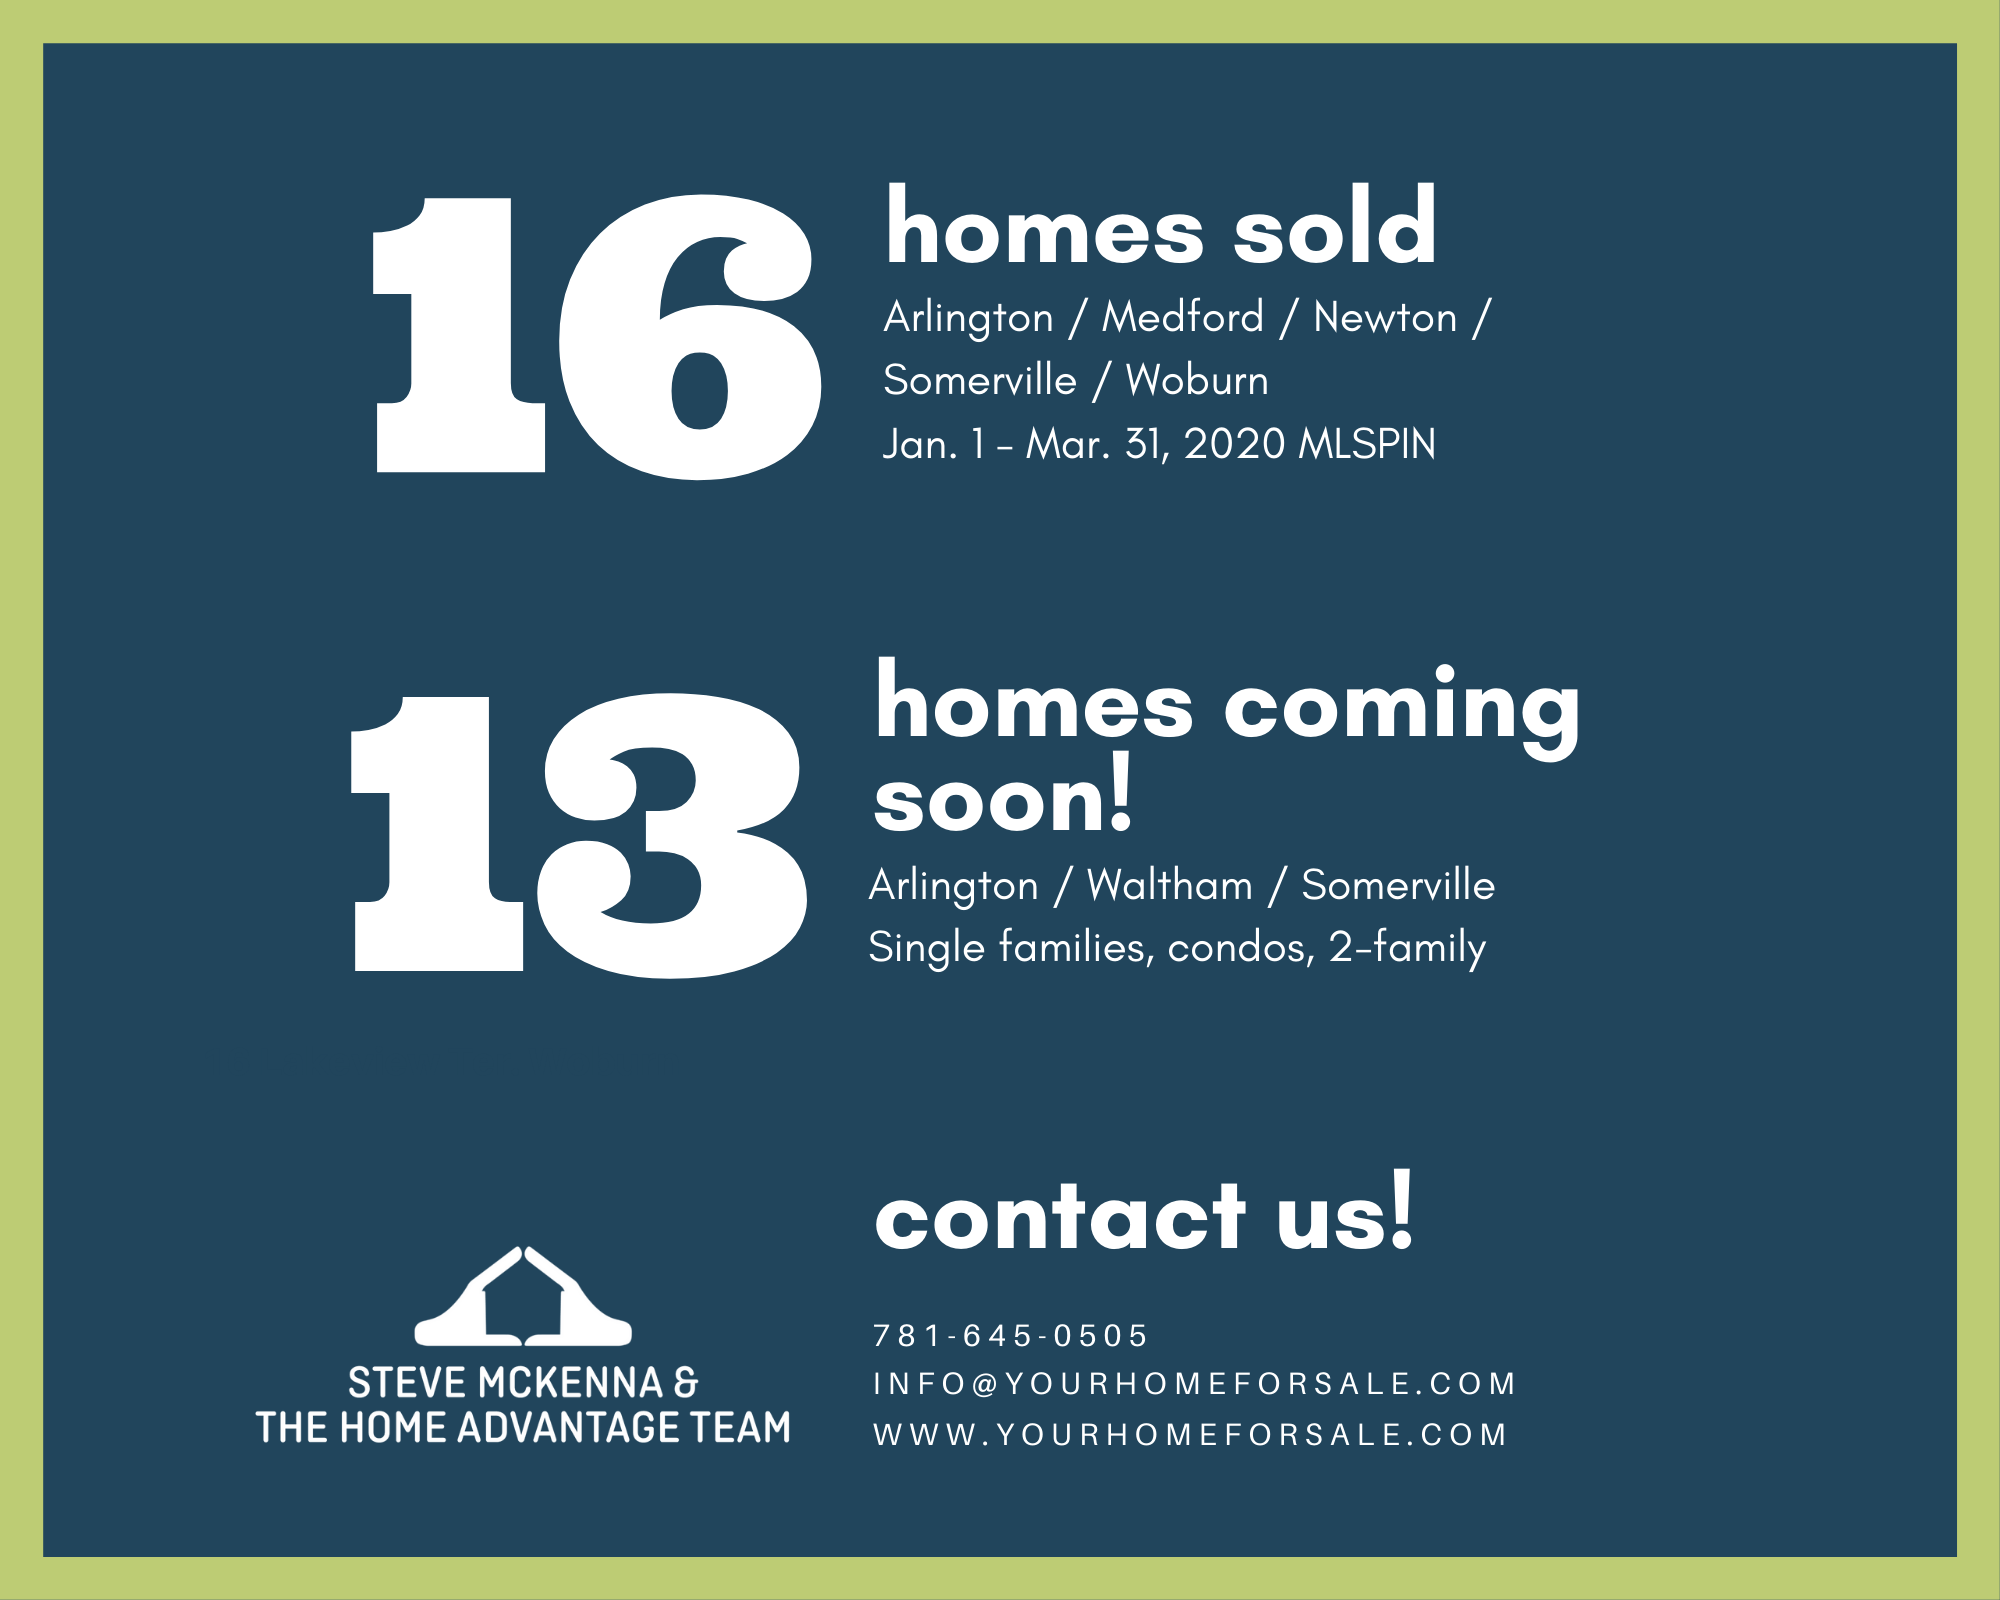 Homes sold and coming soon by Steve McKenna & The Home Advantage Team